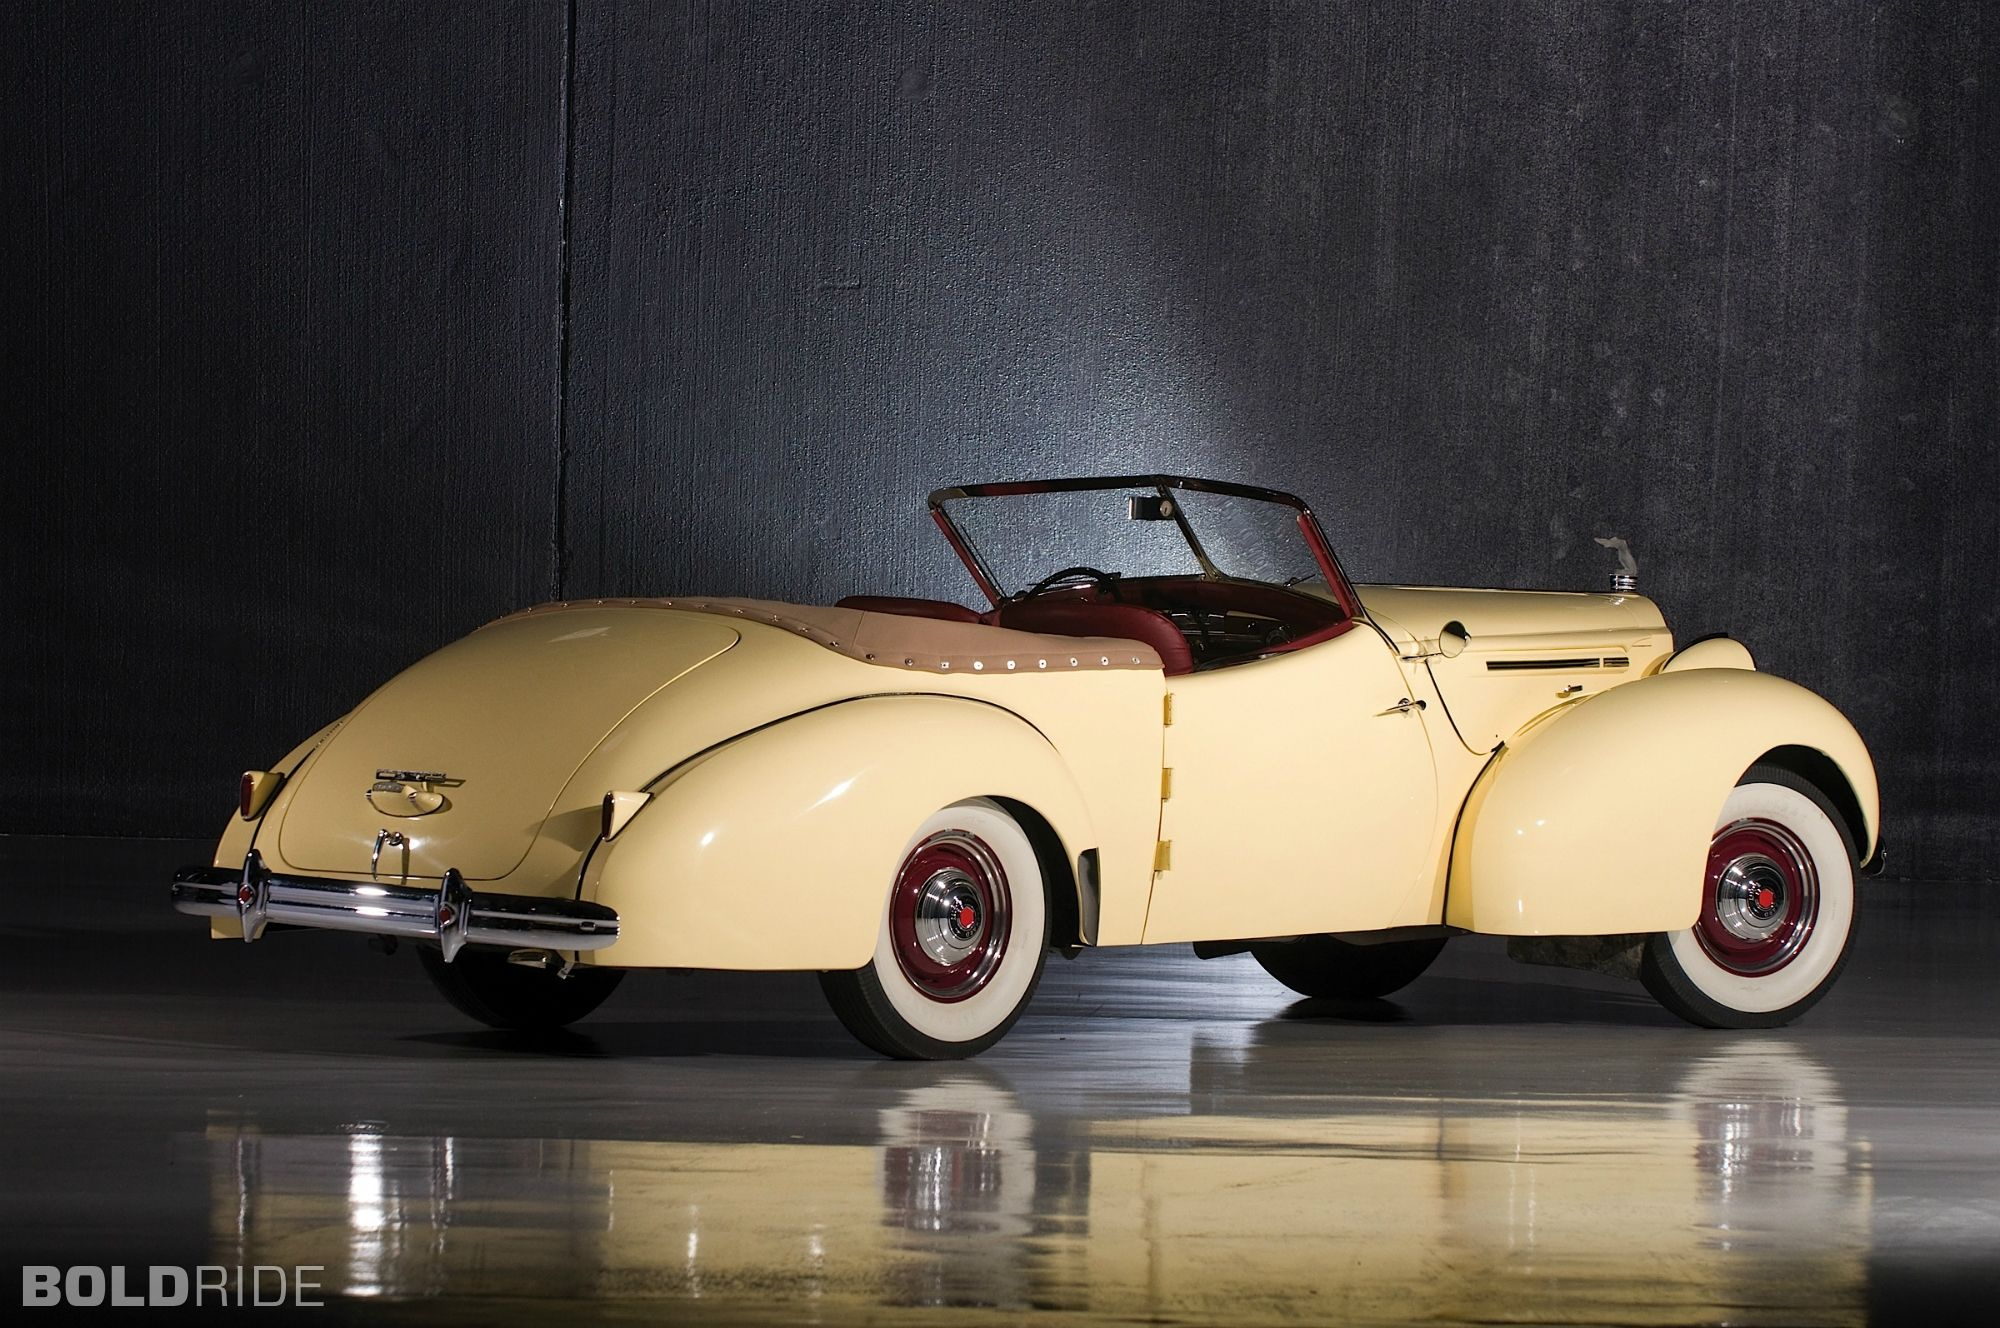 1939 Packard 120 Victoria Convertible | The Garage of